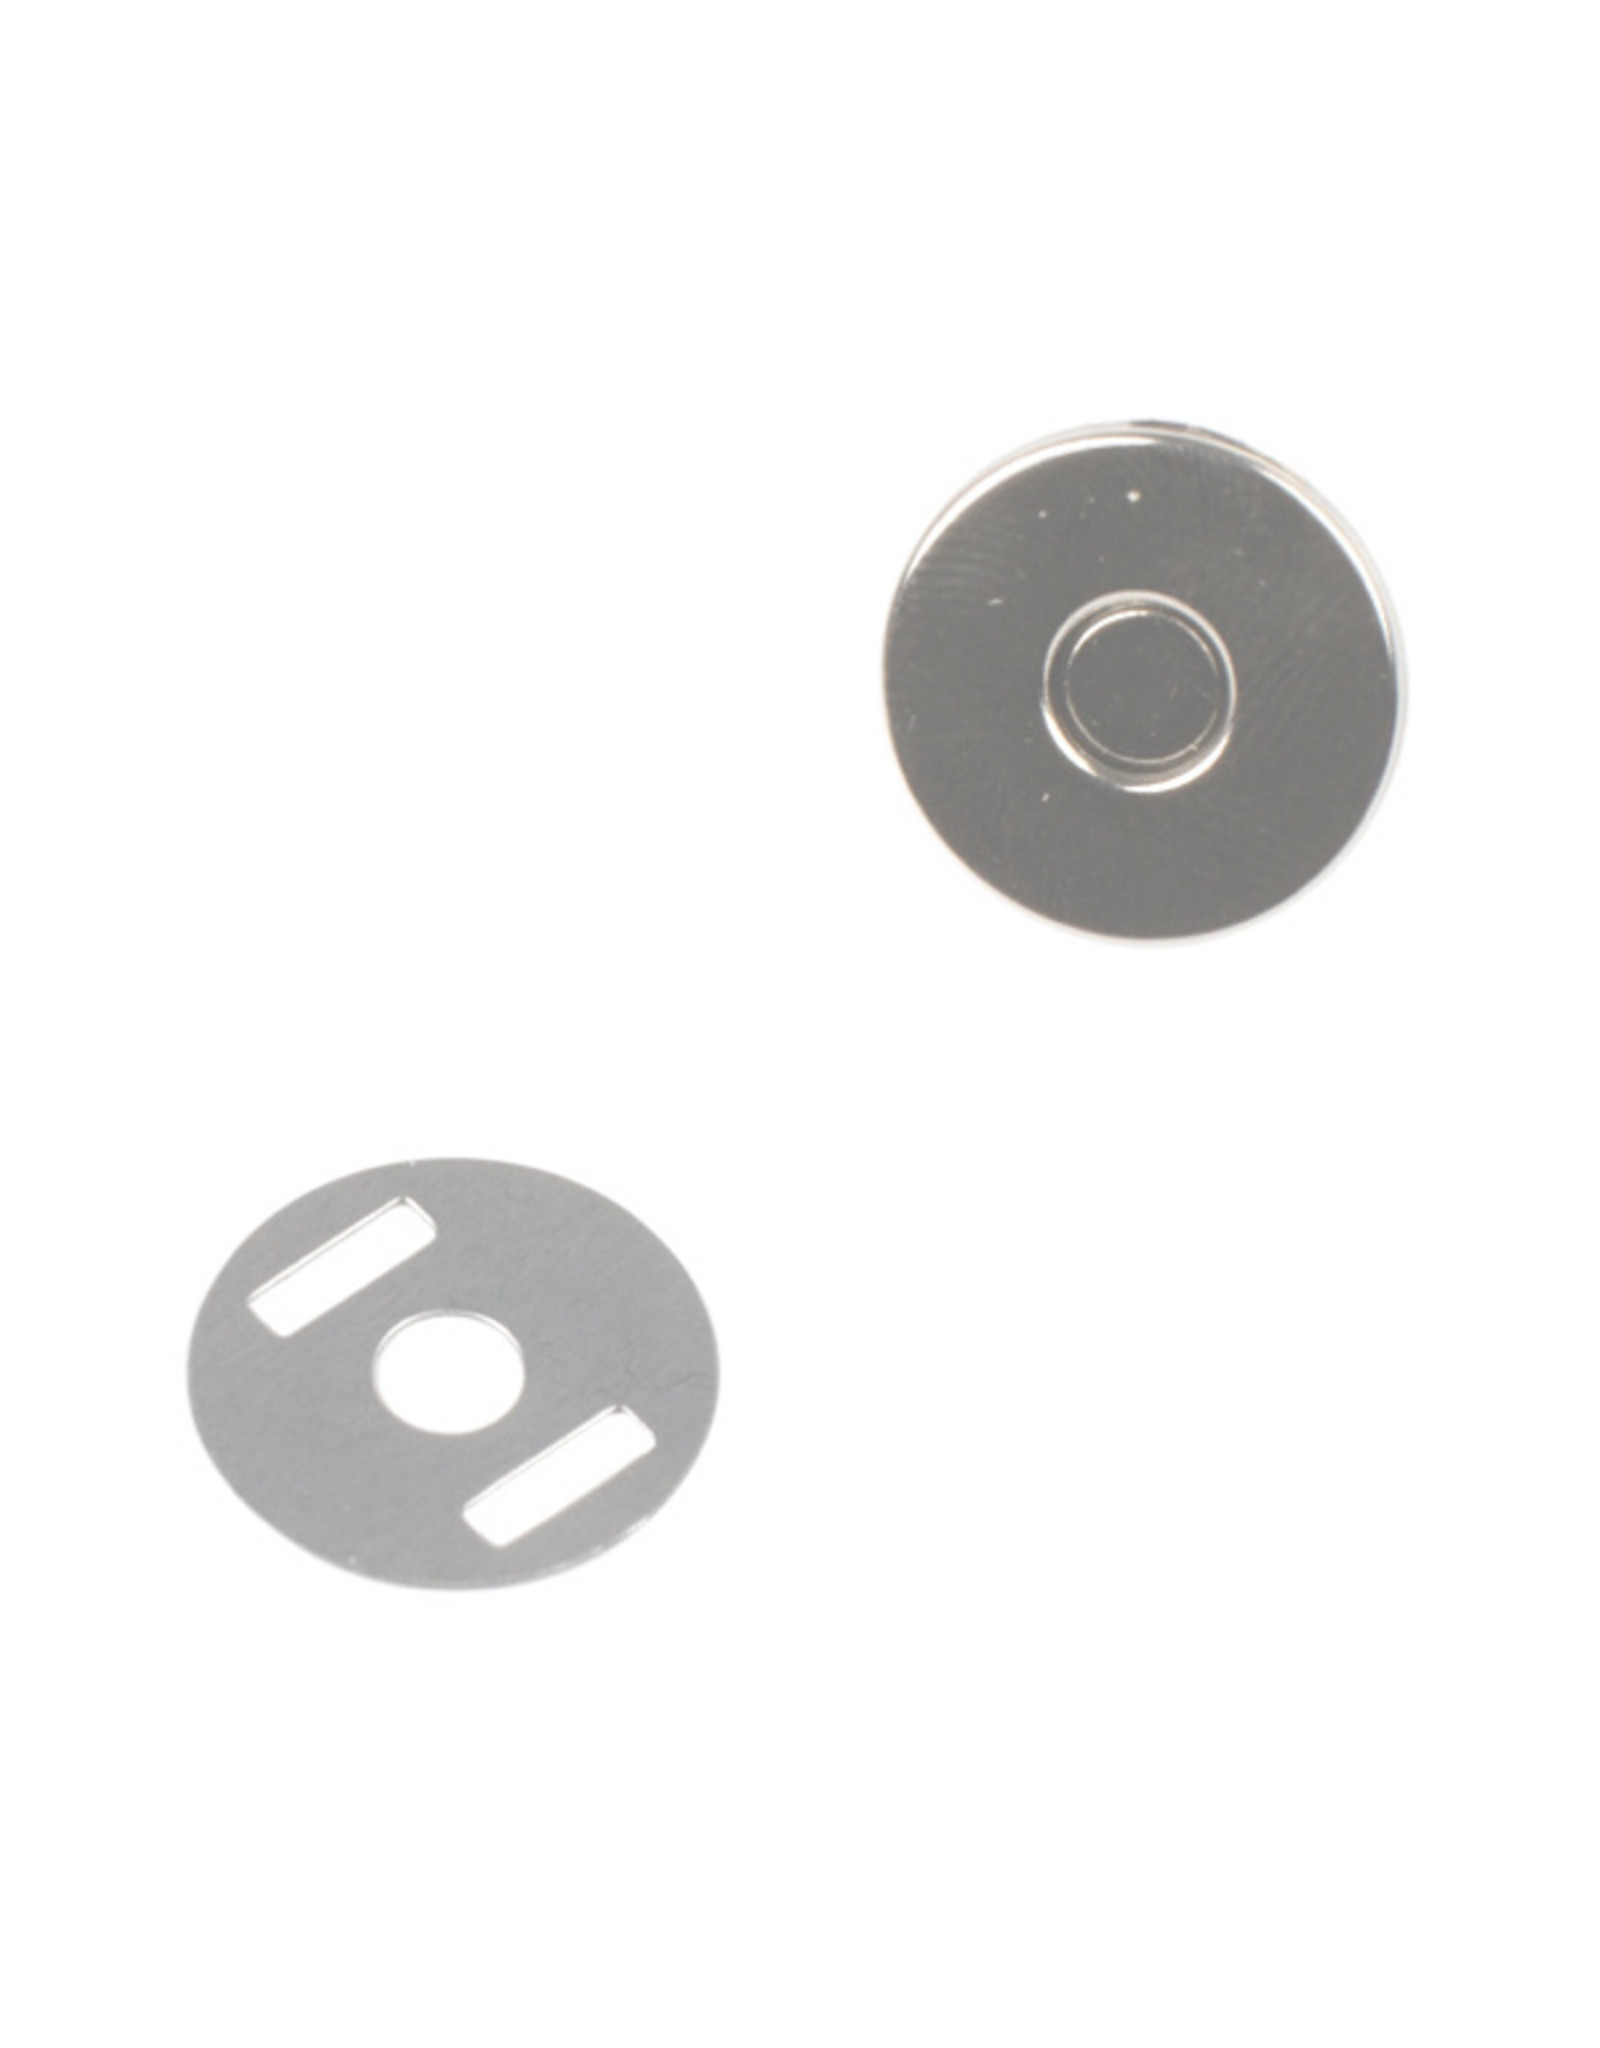 Bohin Magnetic Snap Silver - 14 mm